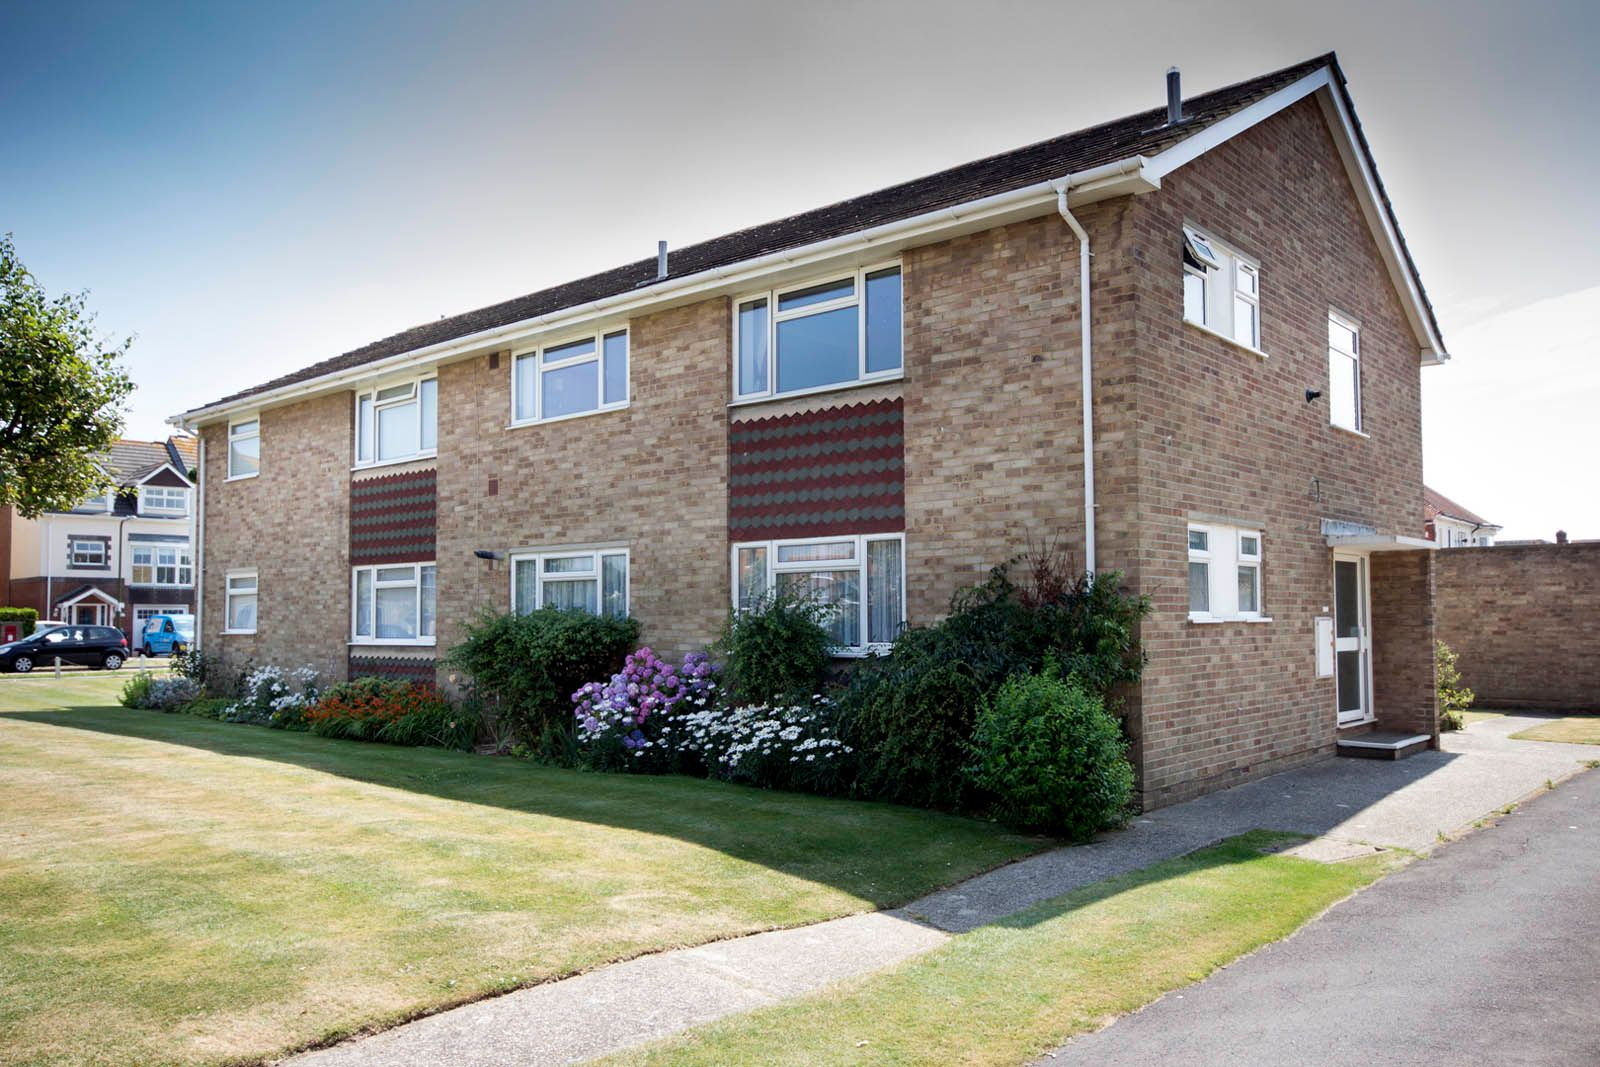 2 bed  for sale in Harsfold Close COMP MAY 2019  - Property Image 9